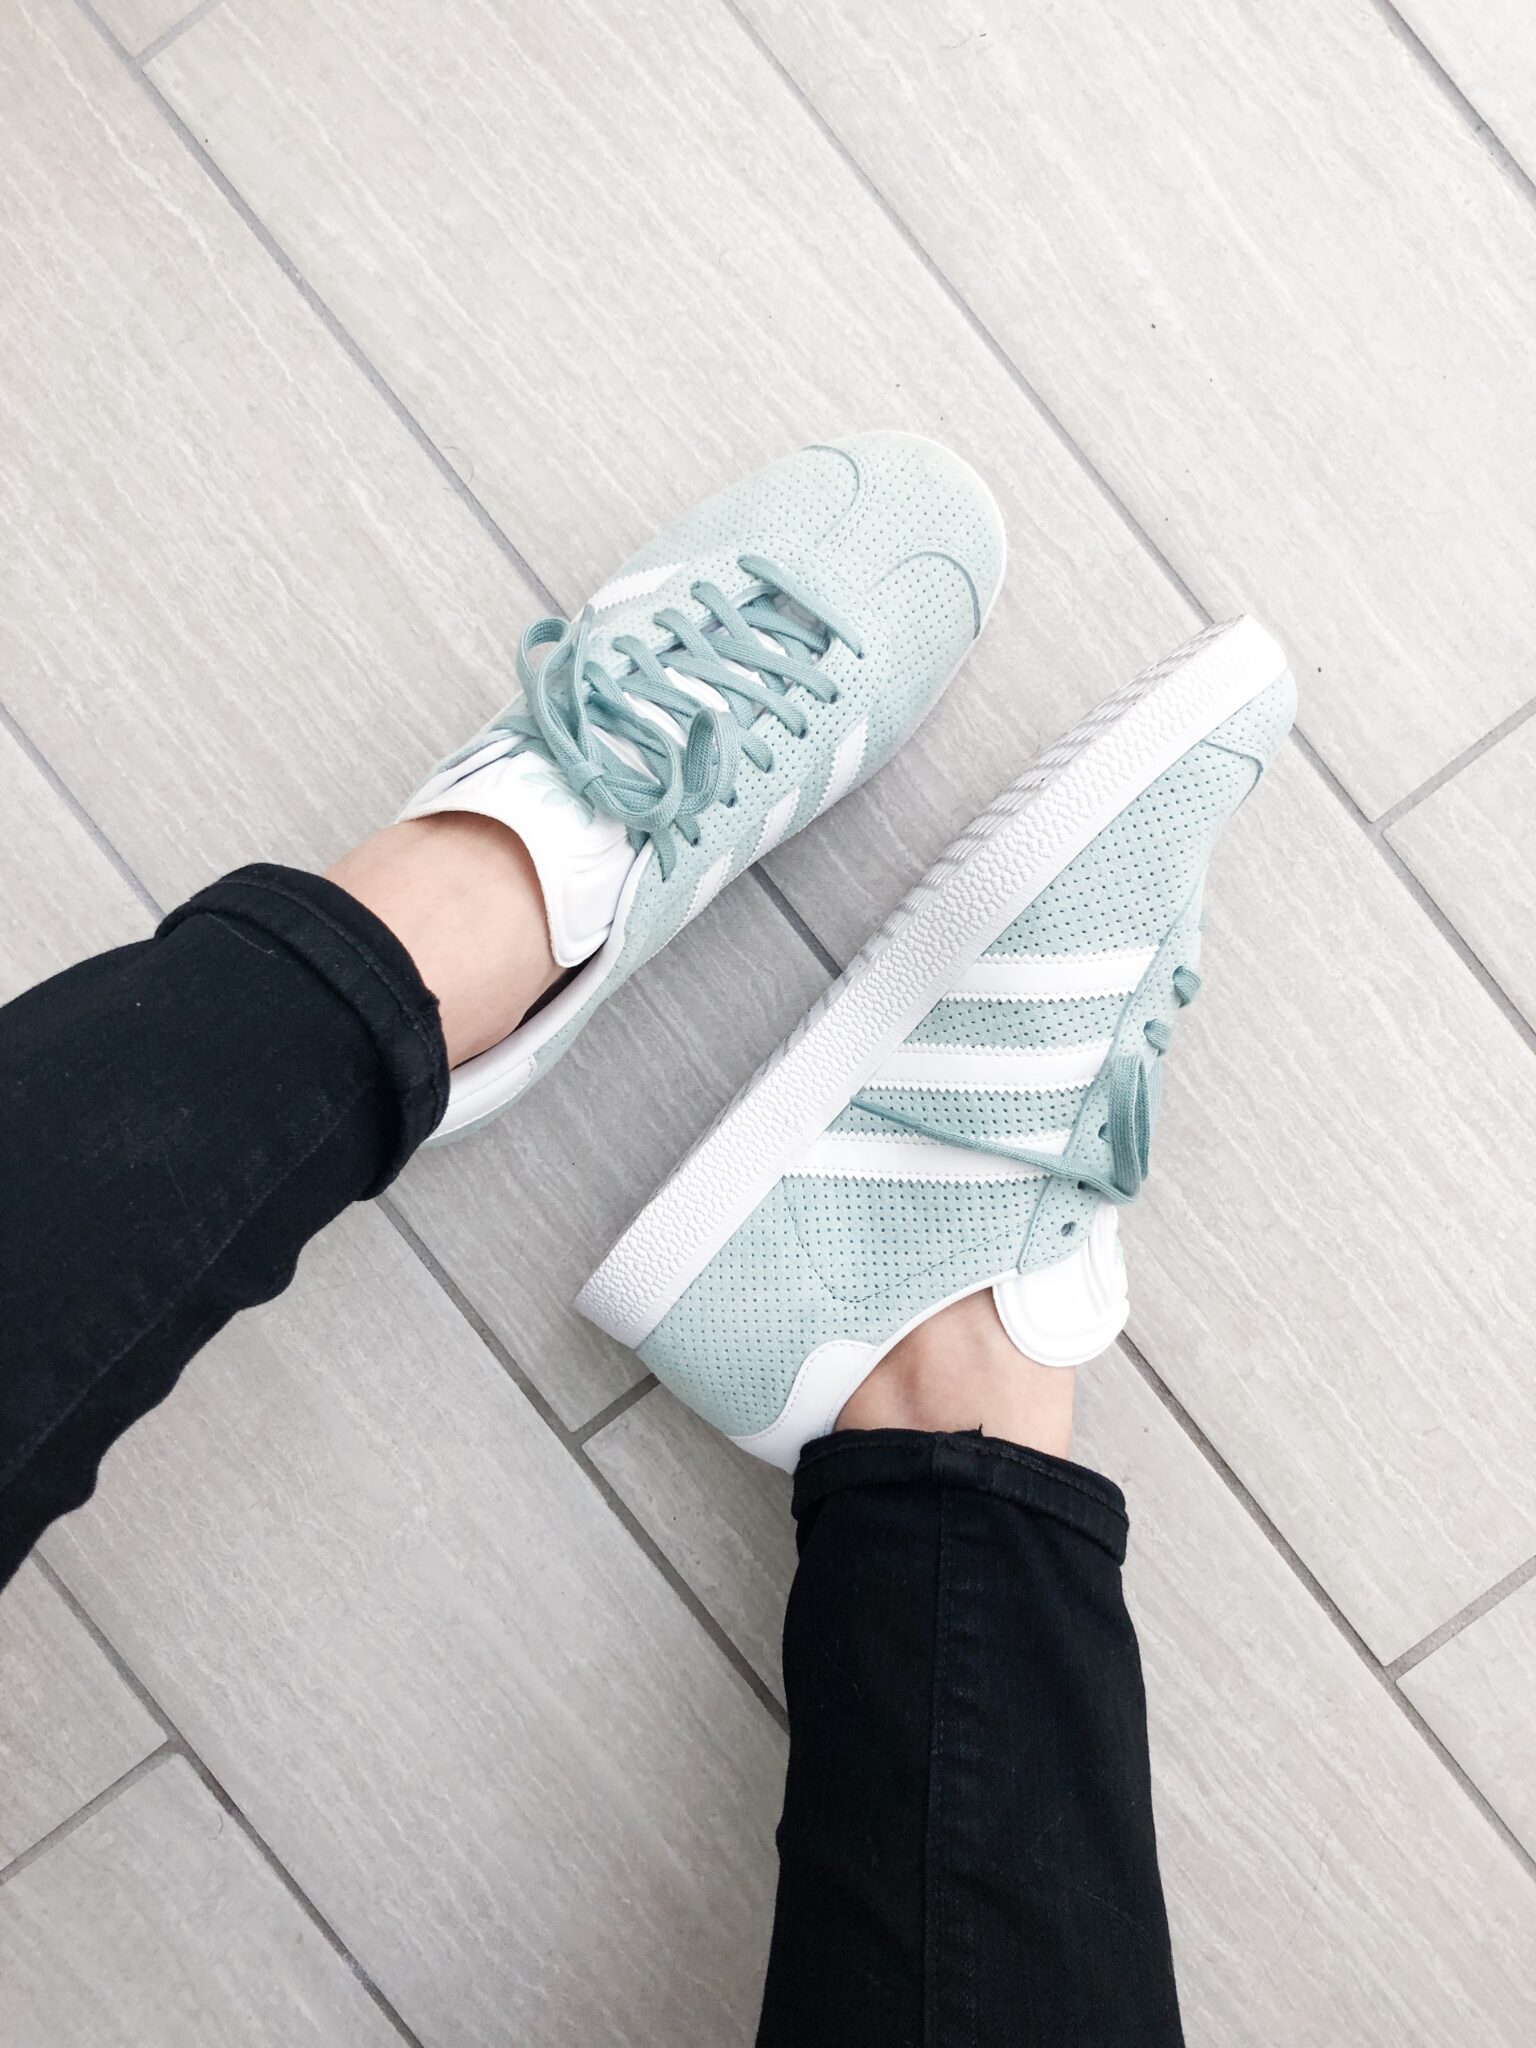 5 Pairs of stylish sneakers under $100